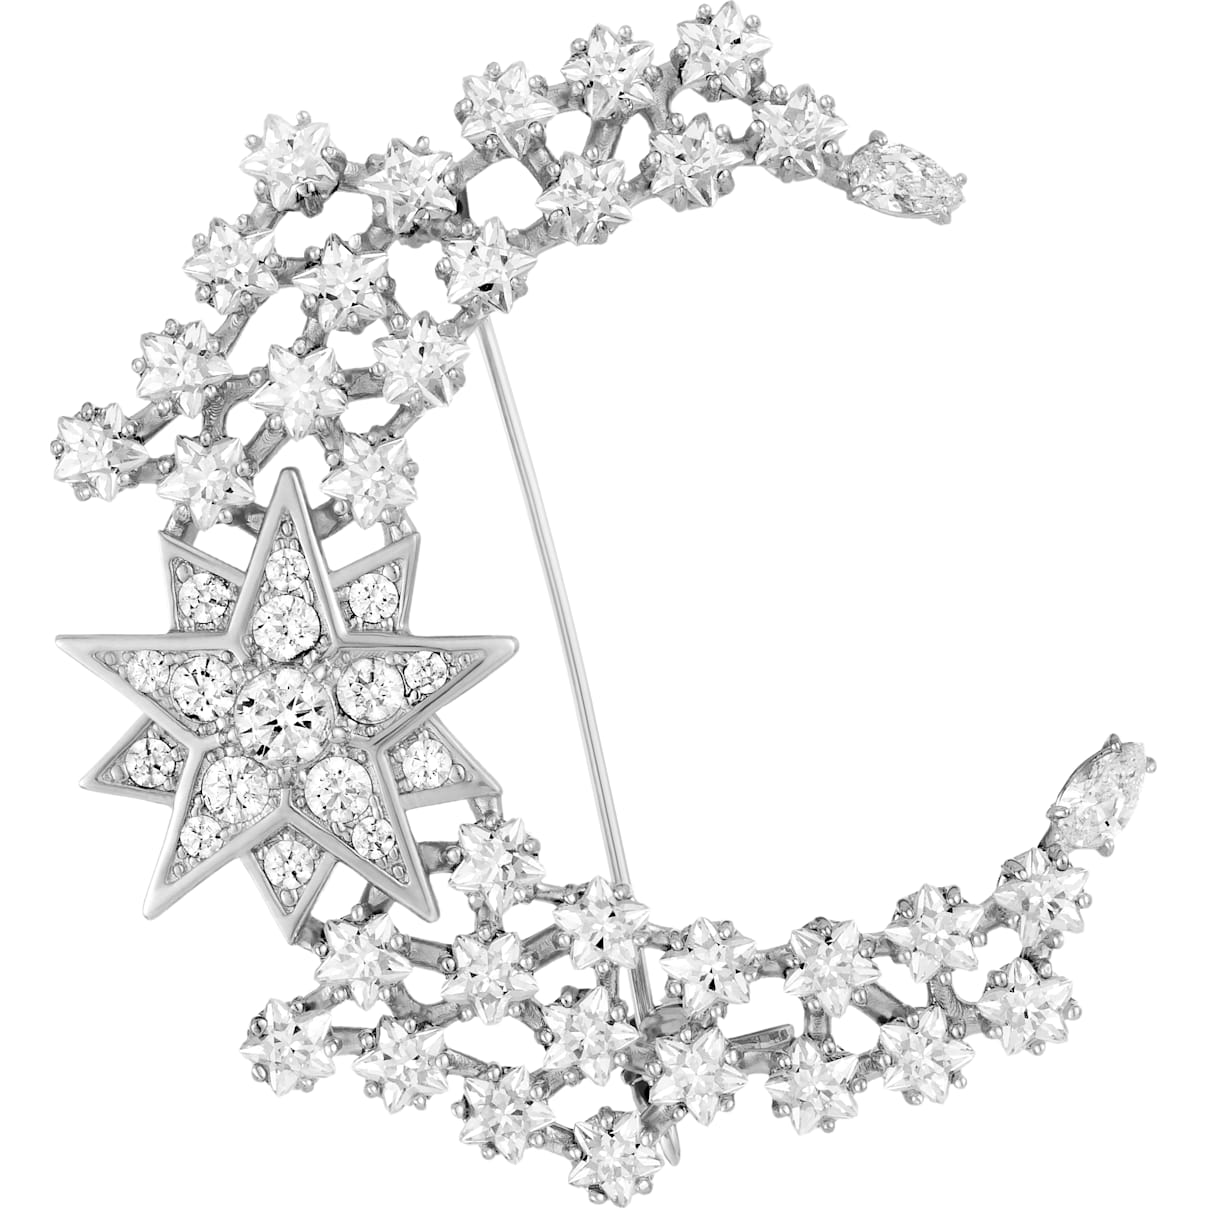 Swarovski Penélope Cruz Moonsun Brooch, Limited Edition, White, Rhodium plated